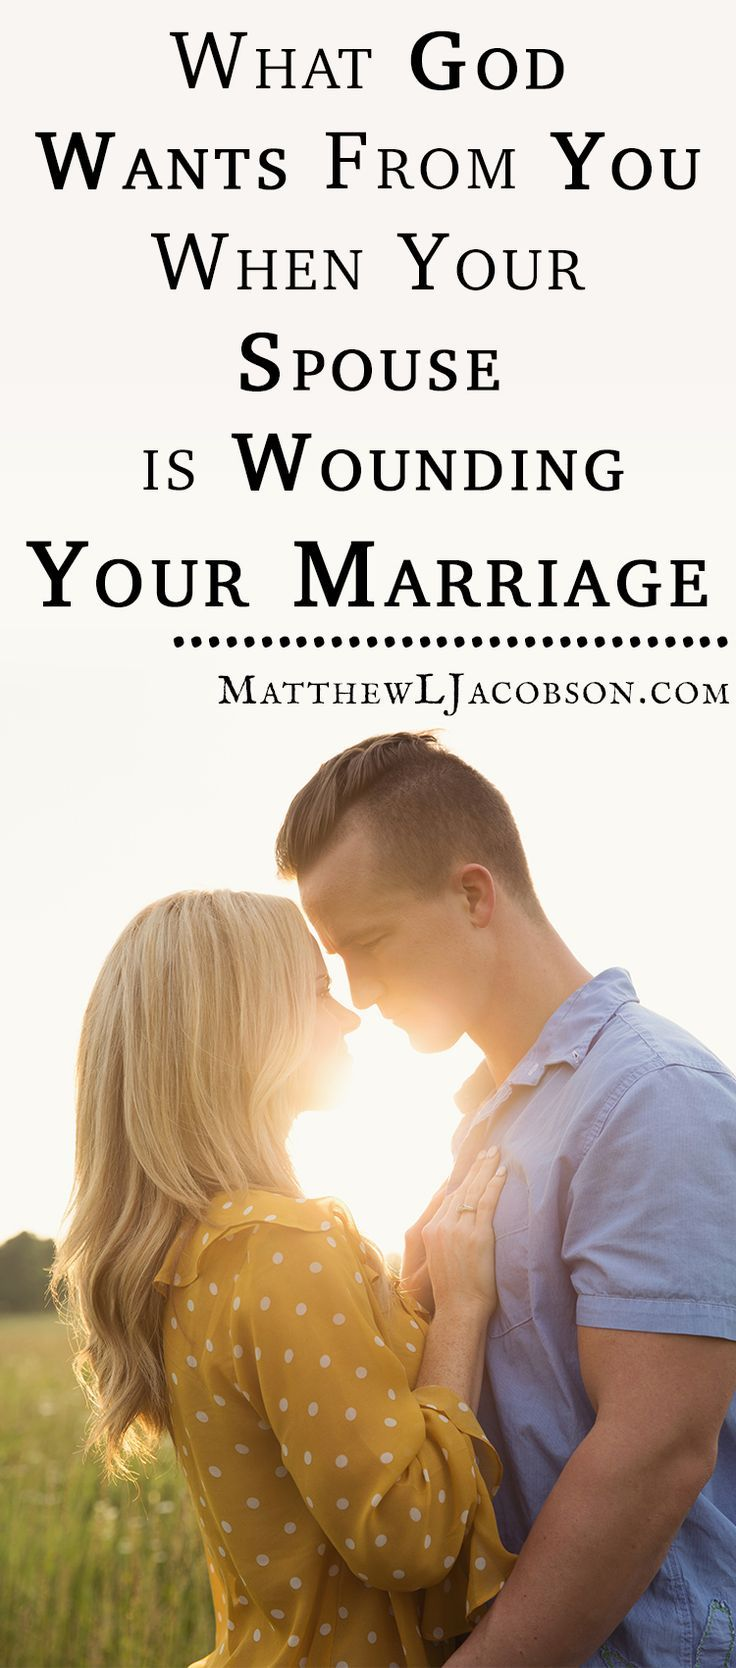 dating advice quotes god family love